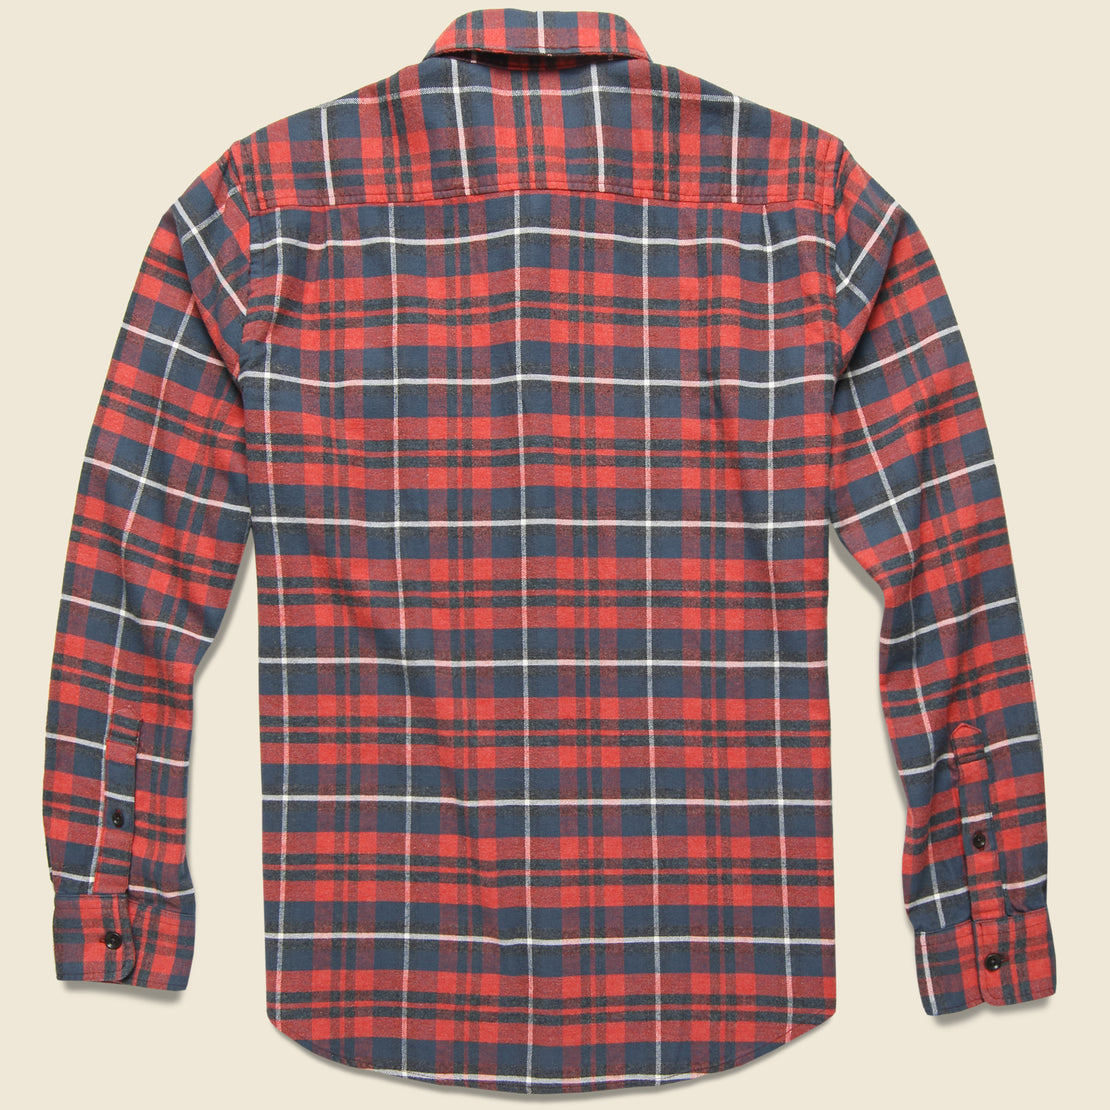 Stretch Seaview Shirt - Red/Charcoal/Grey